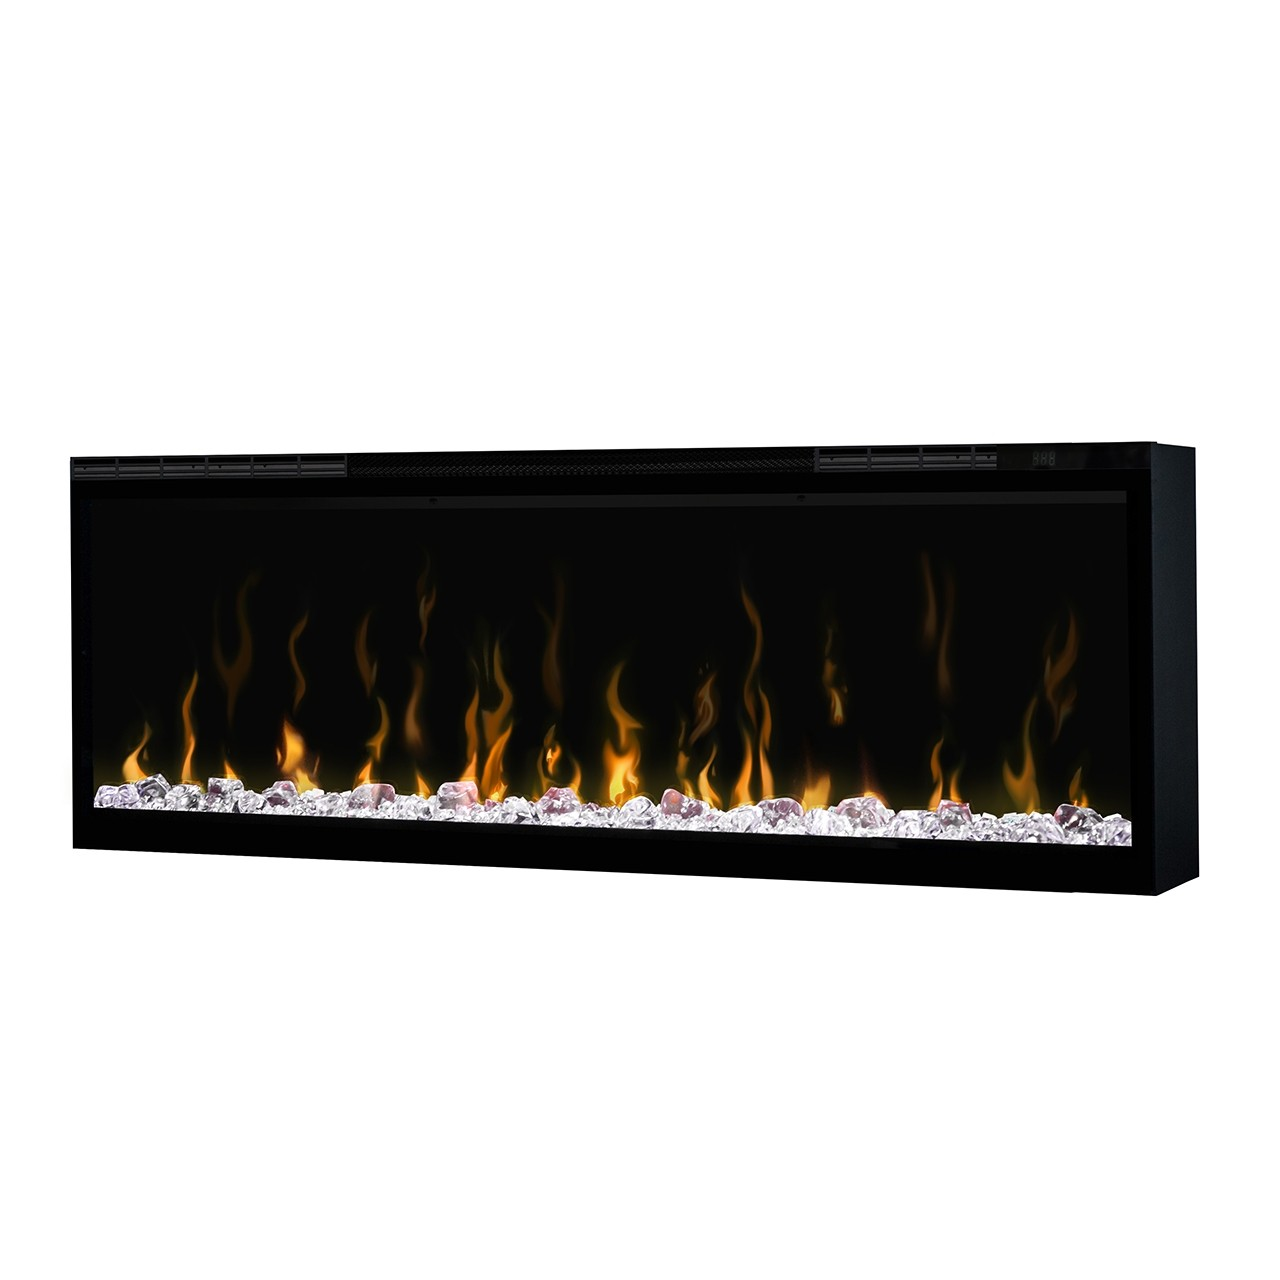 Dimplex XLF50 Electric Wall Fire